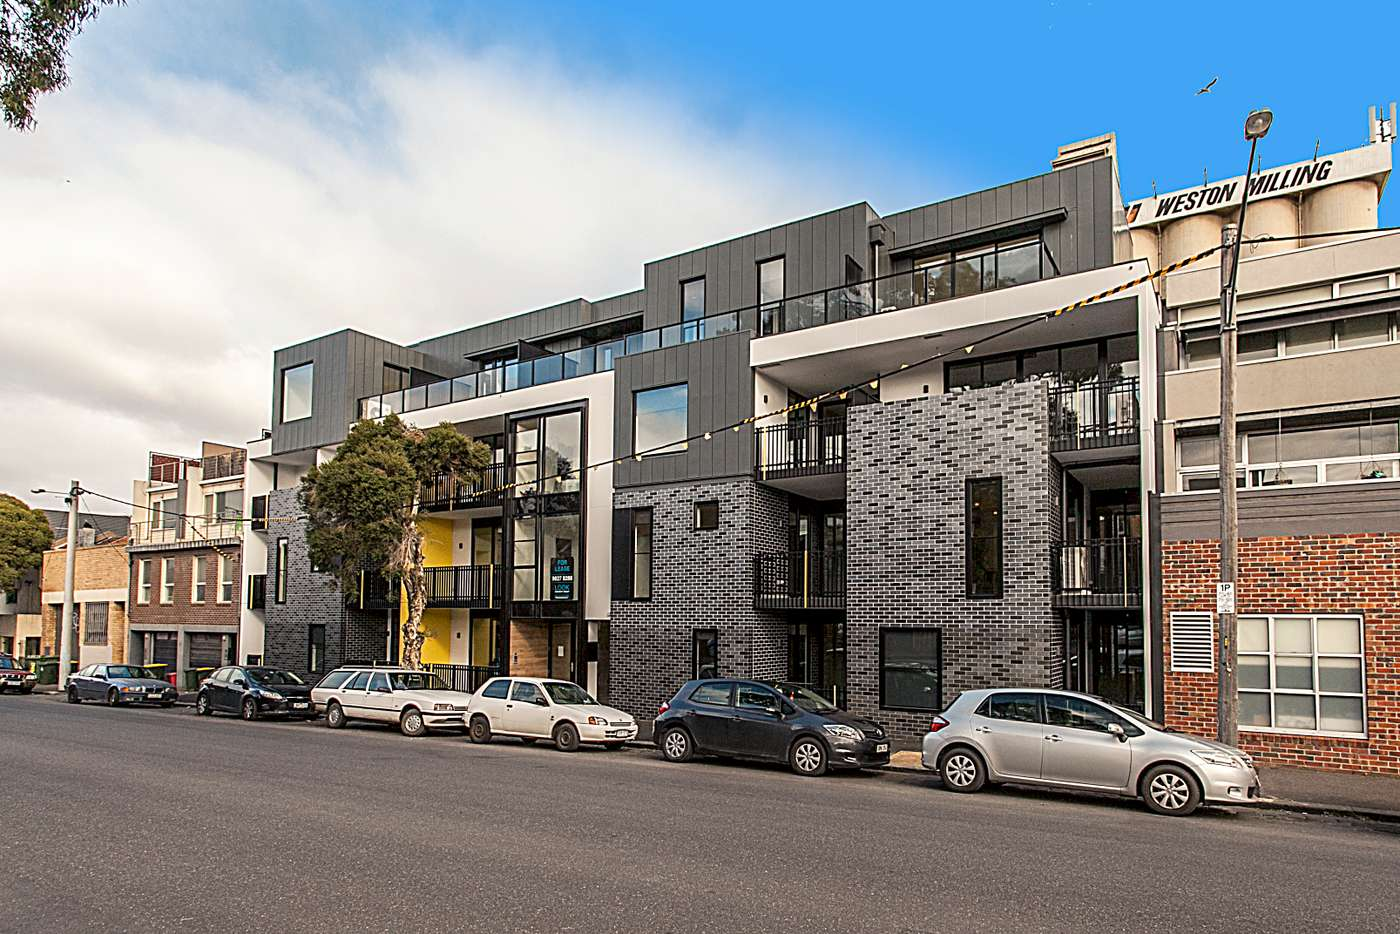 Main view of Homely apartment listing, 310/11 Stawell Street, North Melbourne VIC 3051